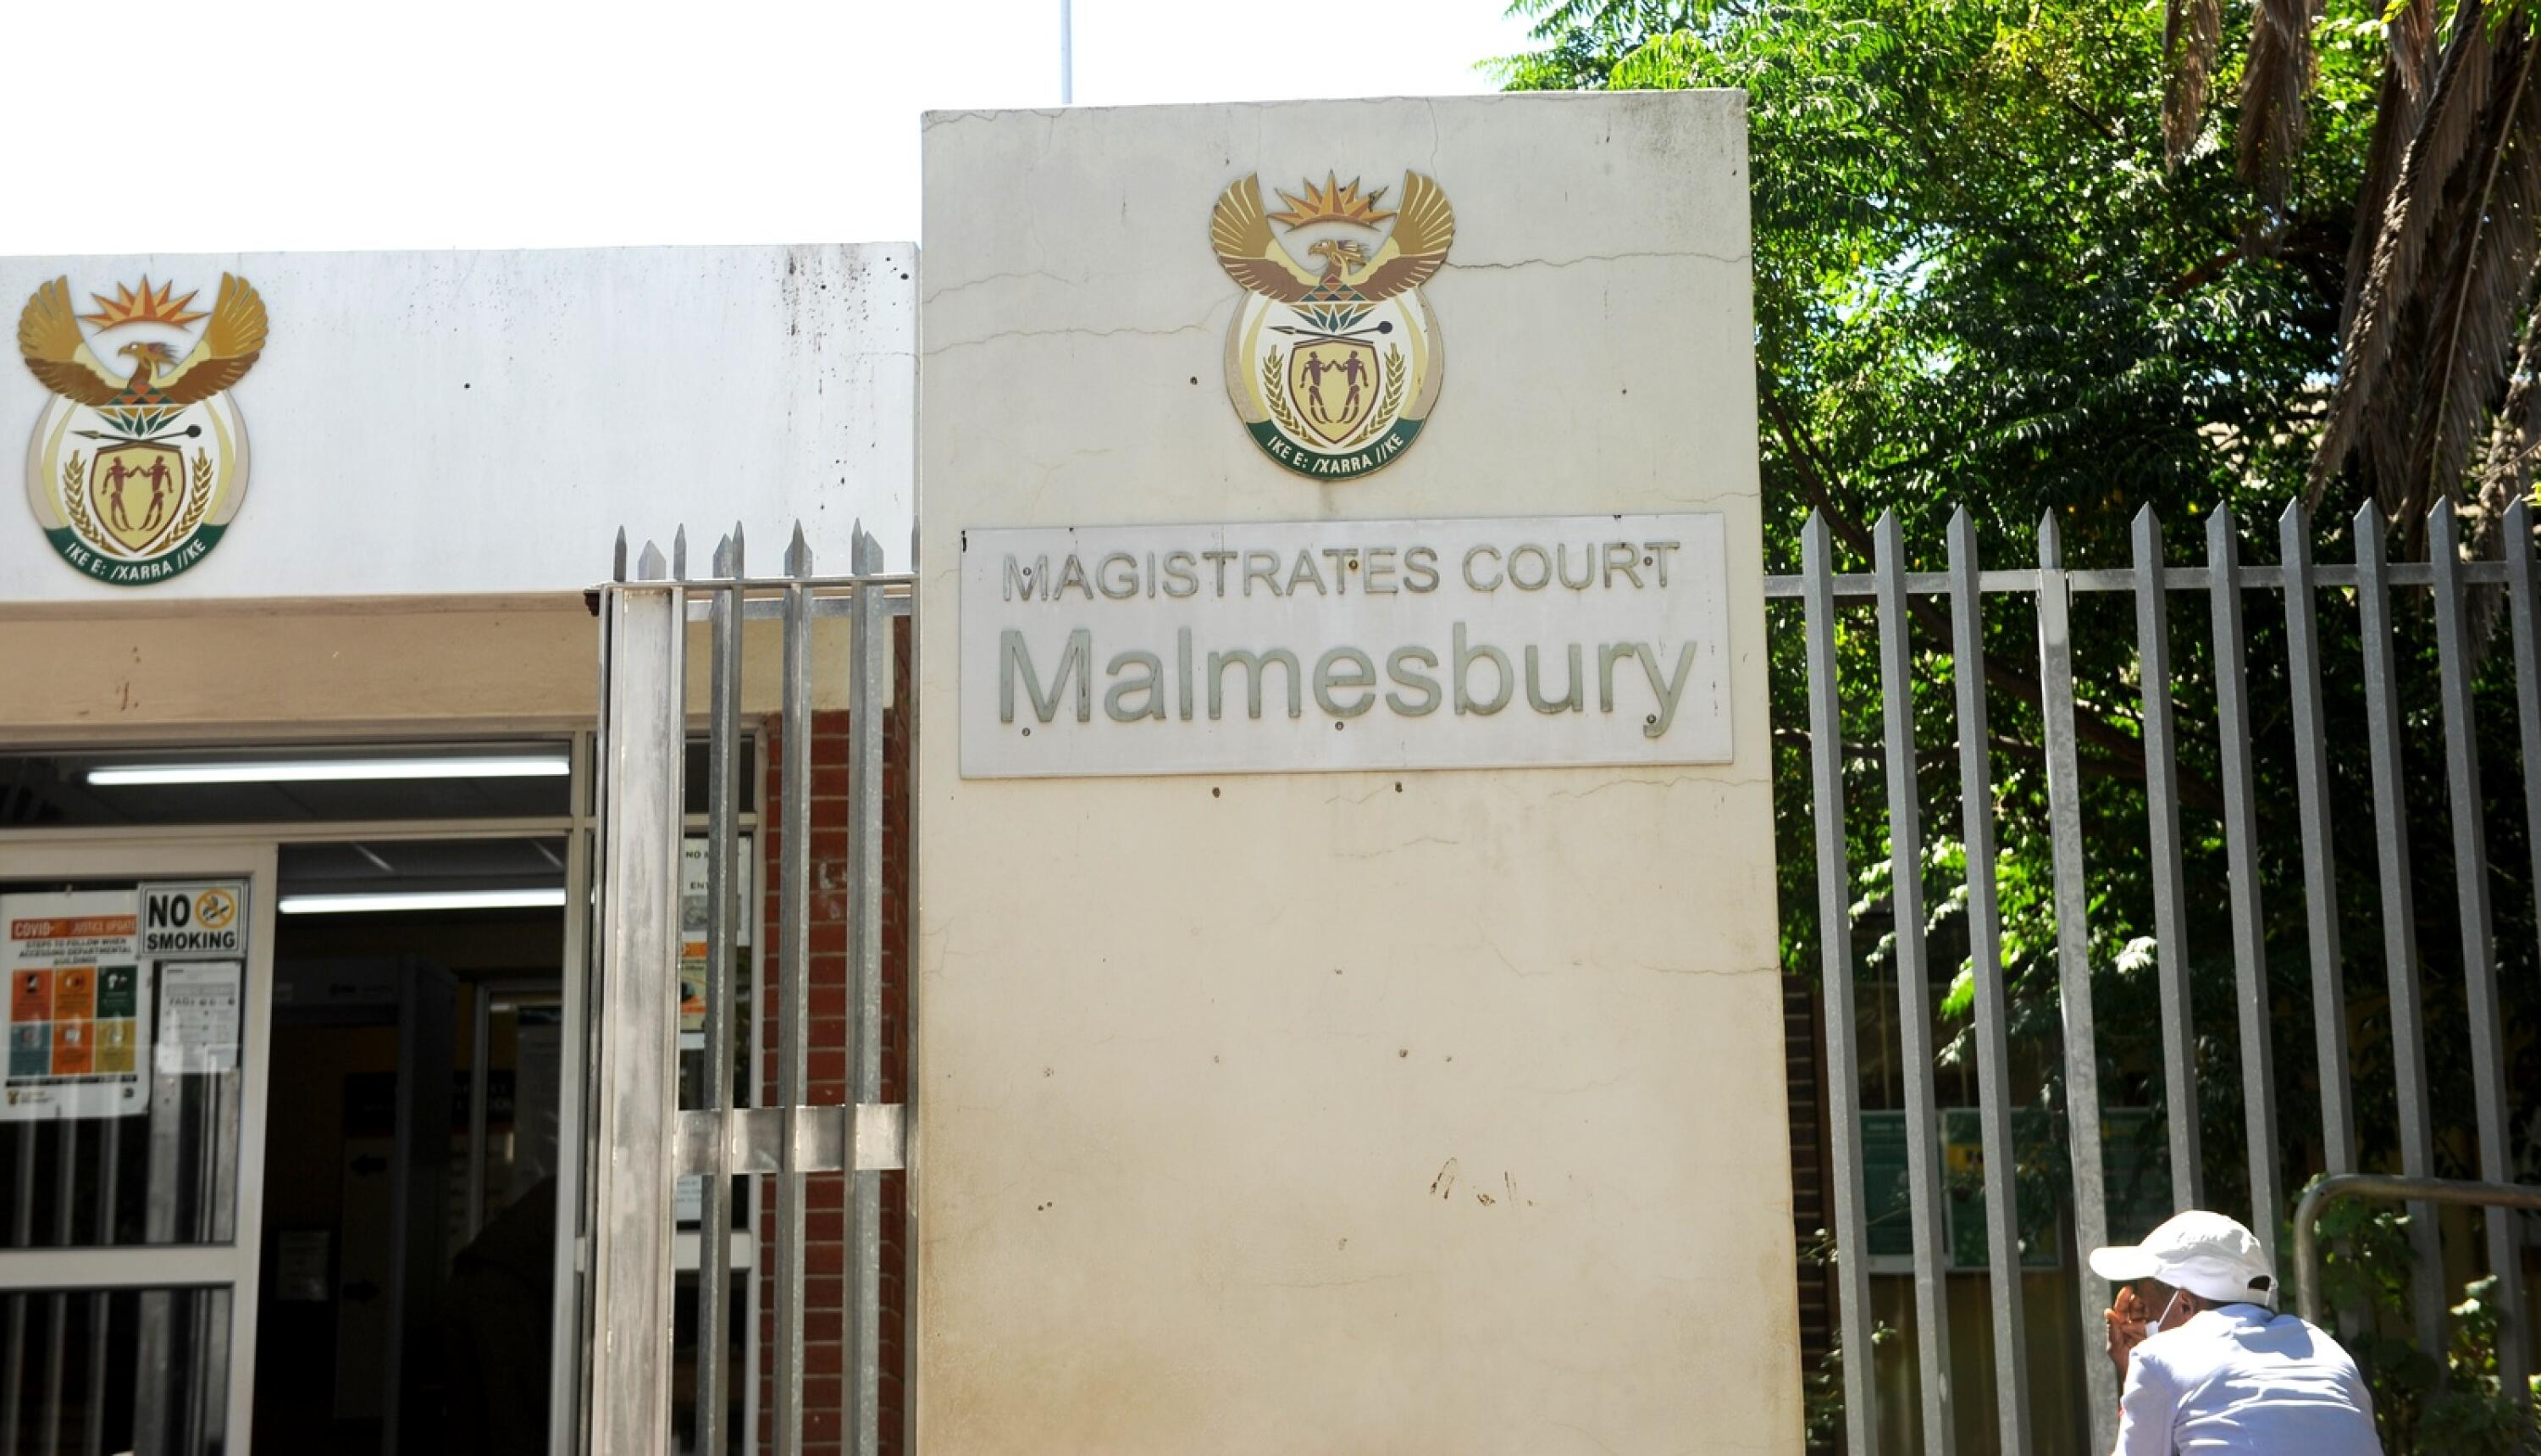 The outside of the Malmesbury Magistrate's Court.